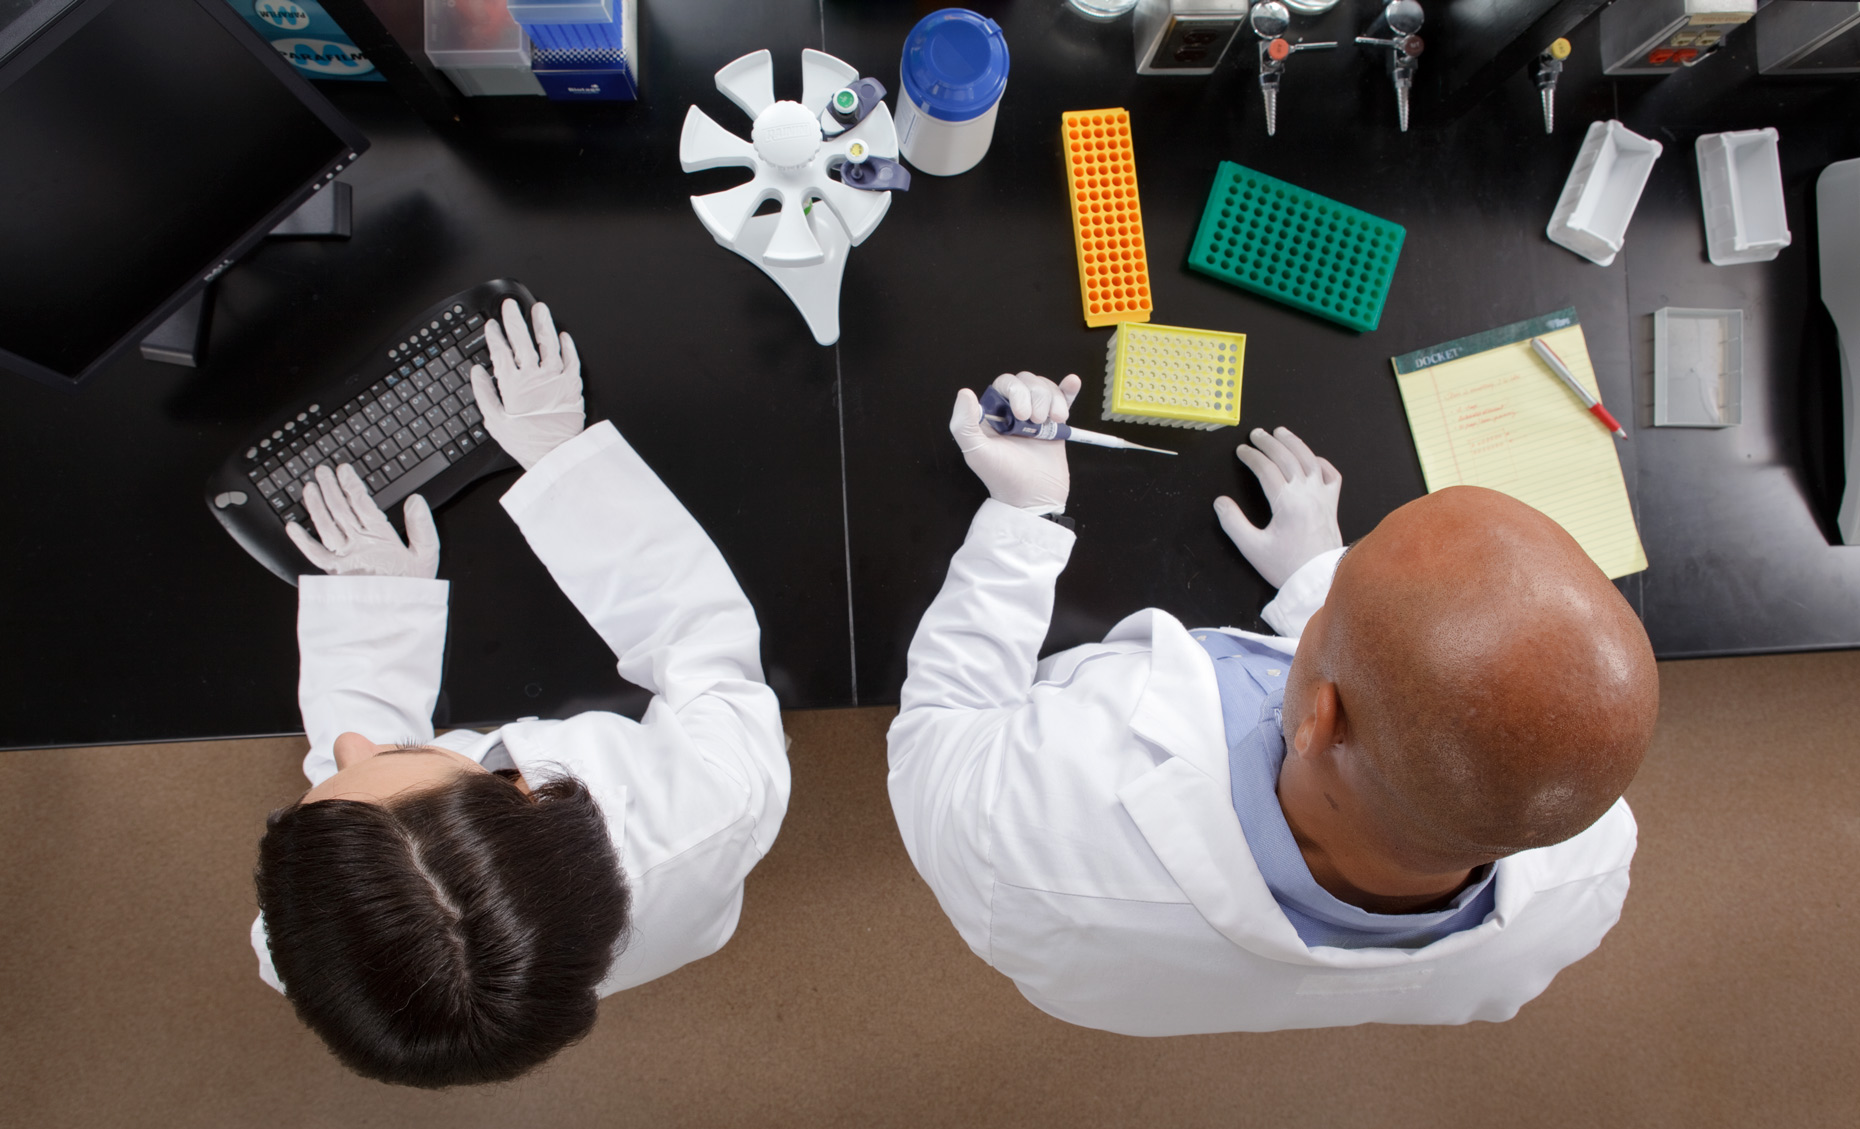 Overhead view of two people working in a laboratory.